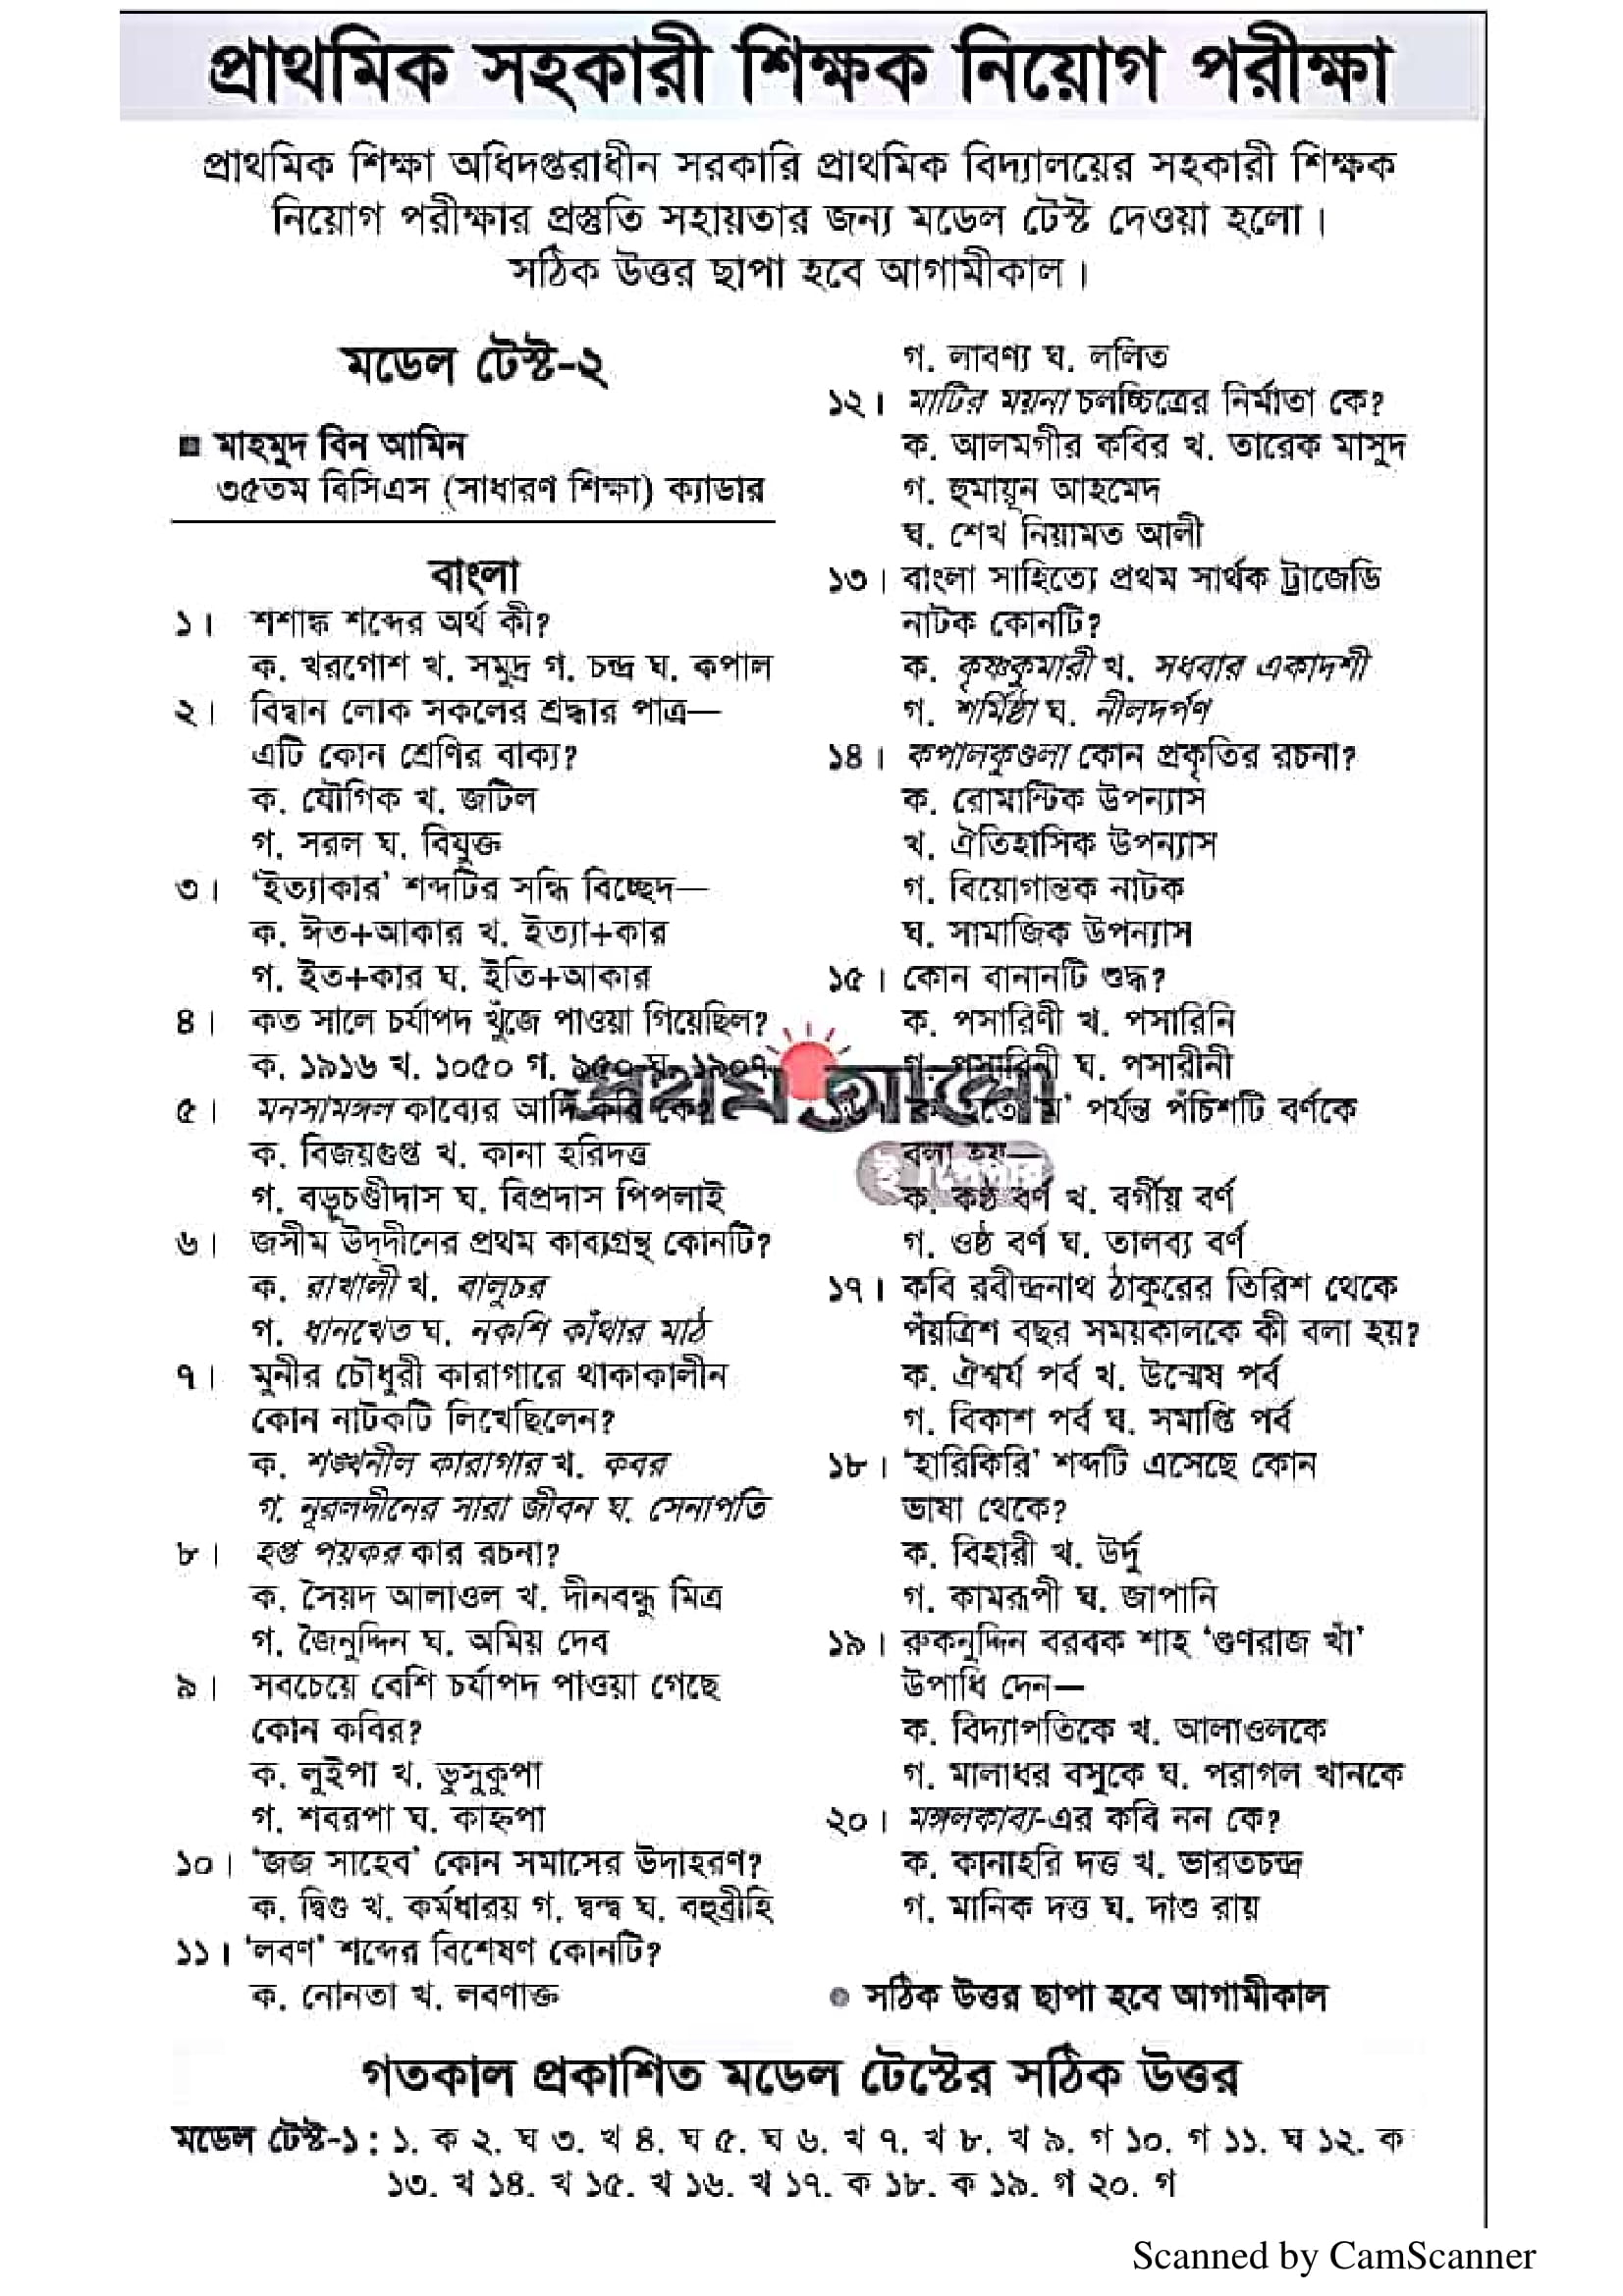 Prothom Alo Part 2 Pdf